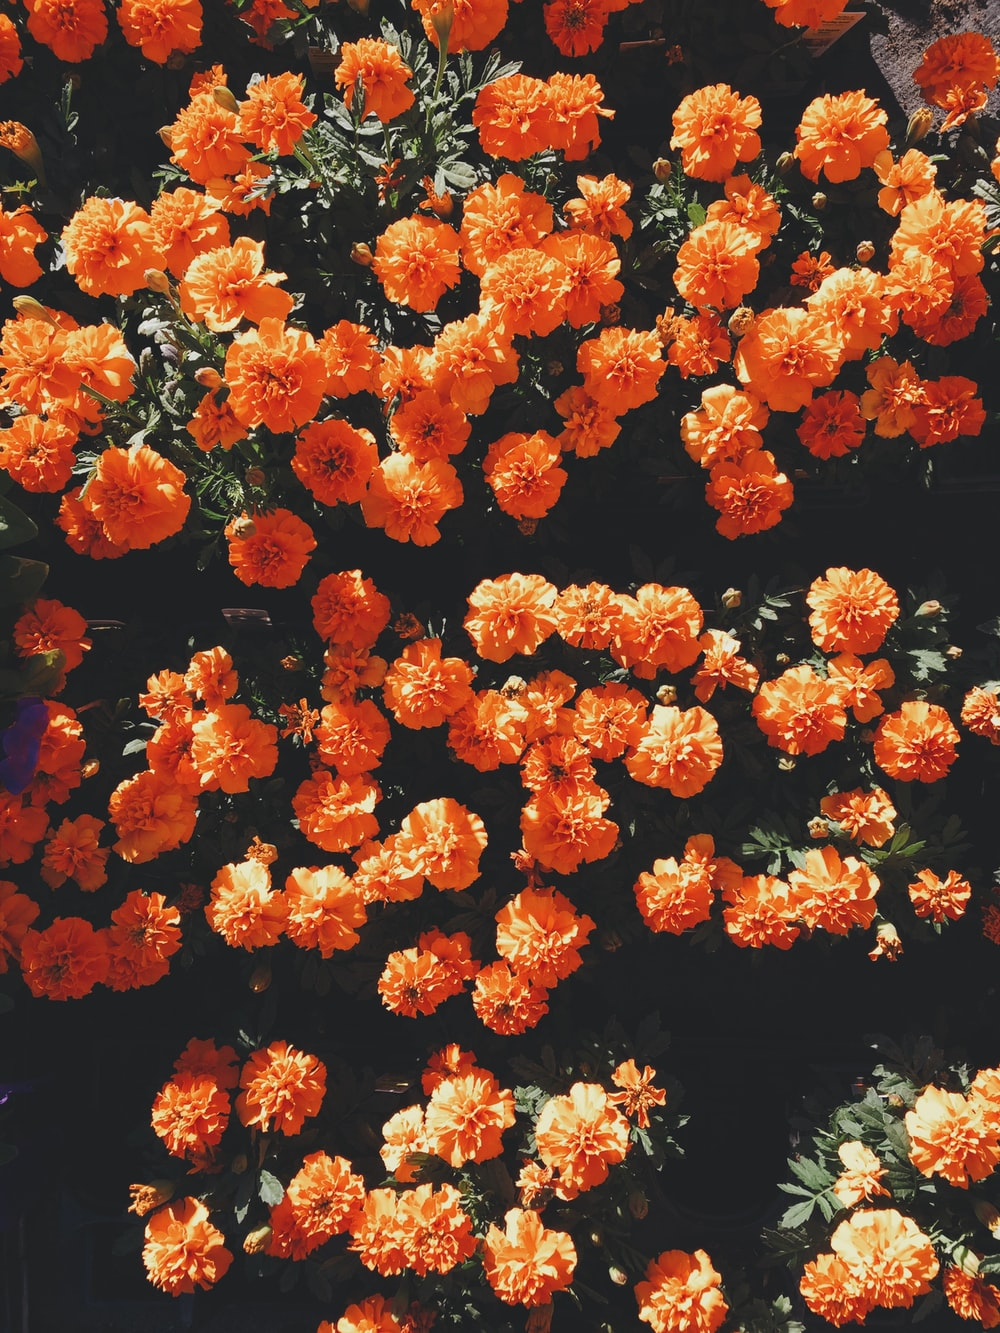 blooming orange petaled flowers at daytime